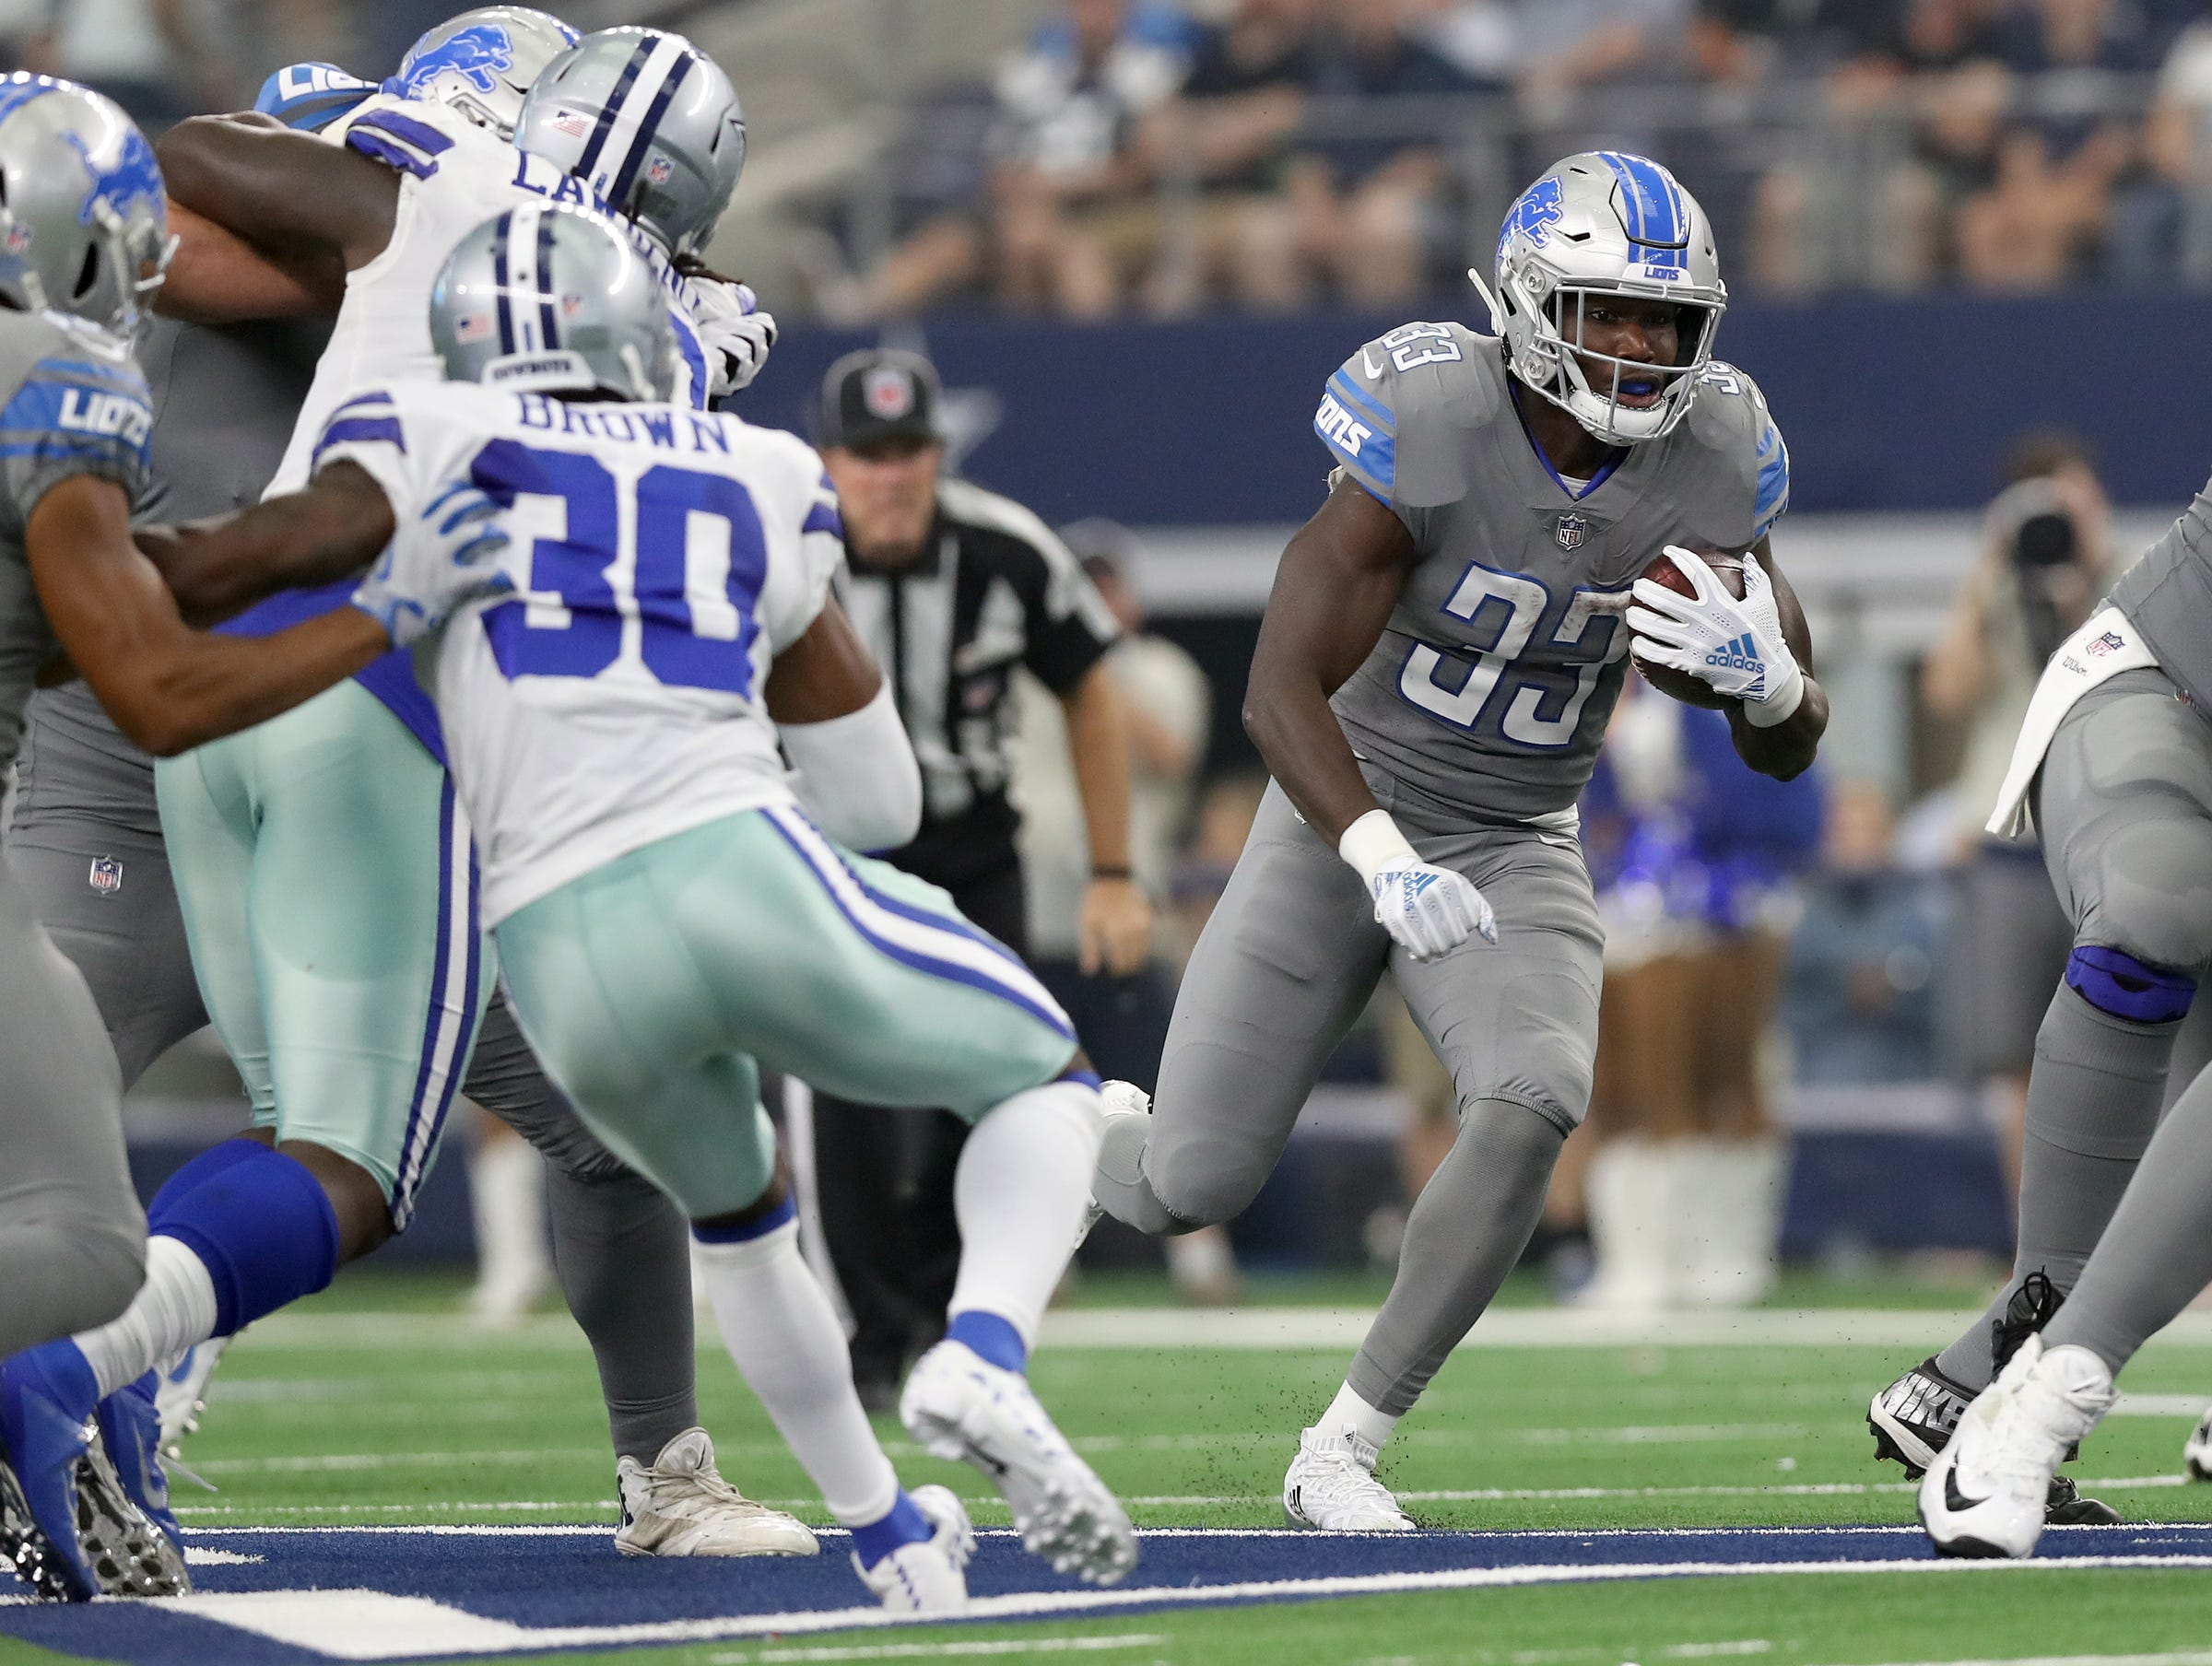 Lions running back Kerryon Johnson runs with the ball in the second quarter on Sunday, Sept. 30, 2018, in Arlington, Texas.